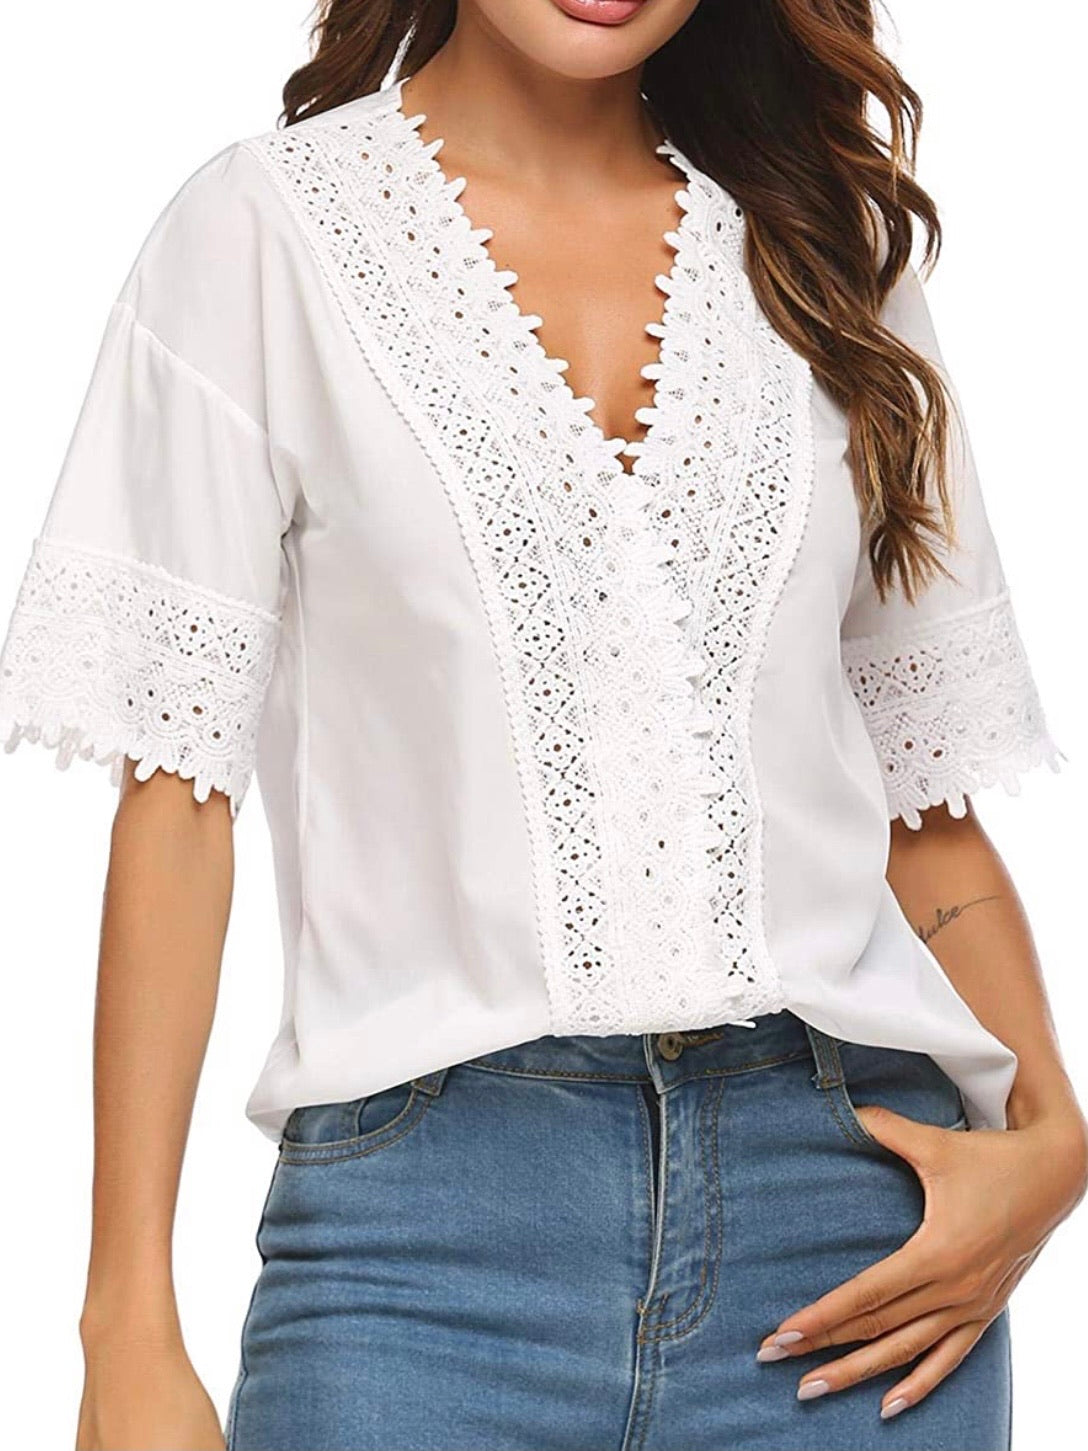 Copia de White Top